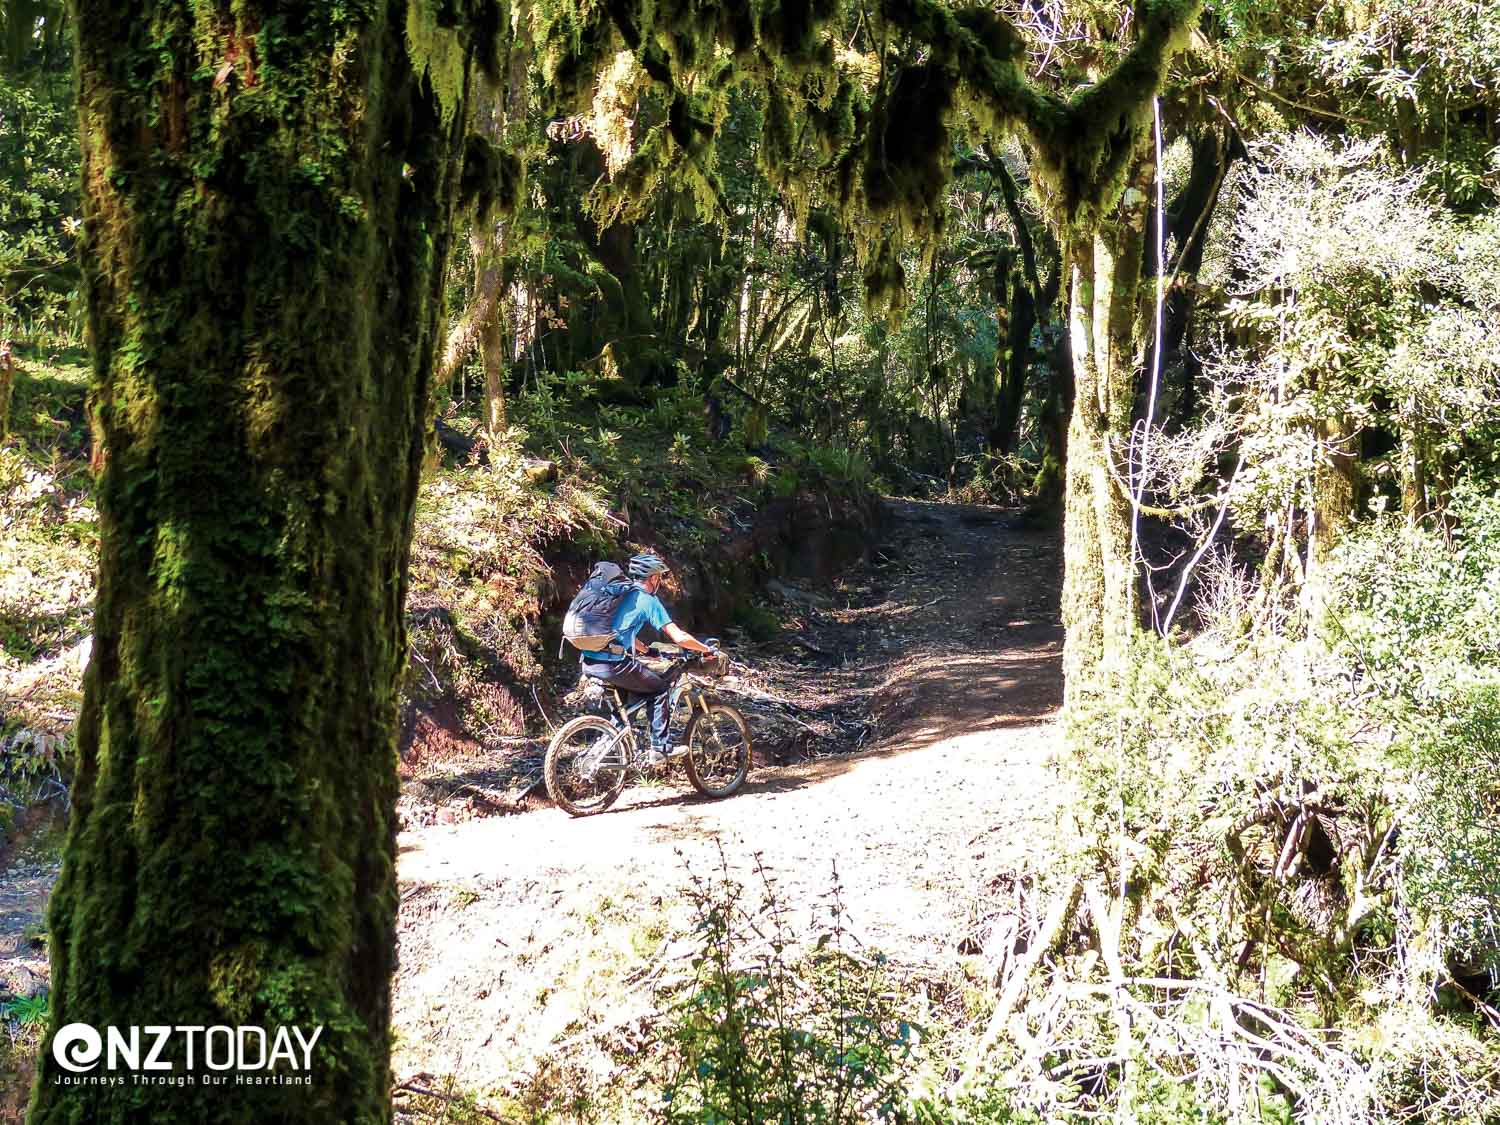 Riding into the cloud forest, its contorted branches draped in haunting moss